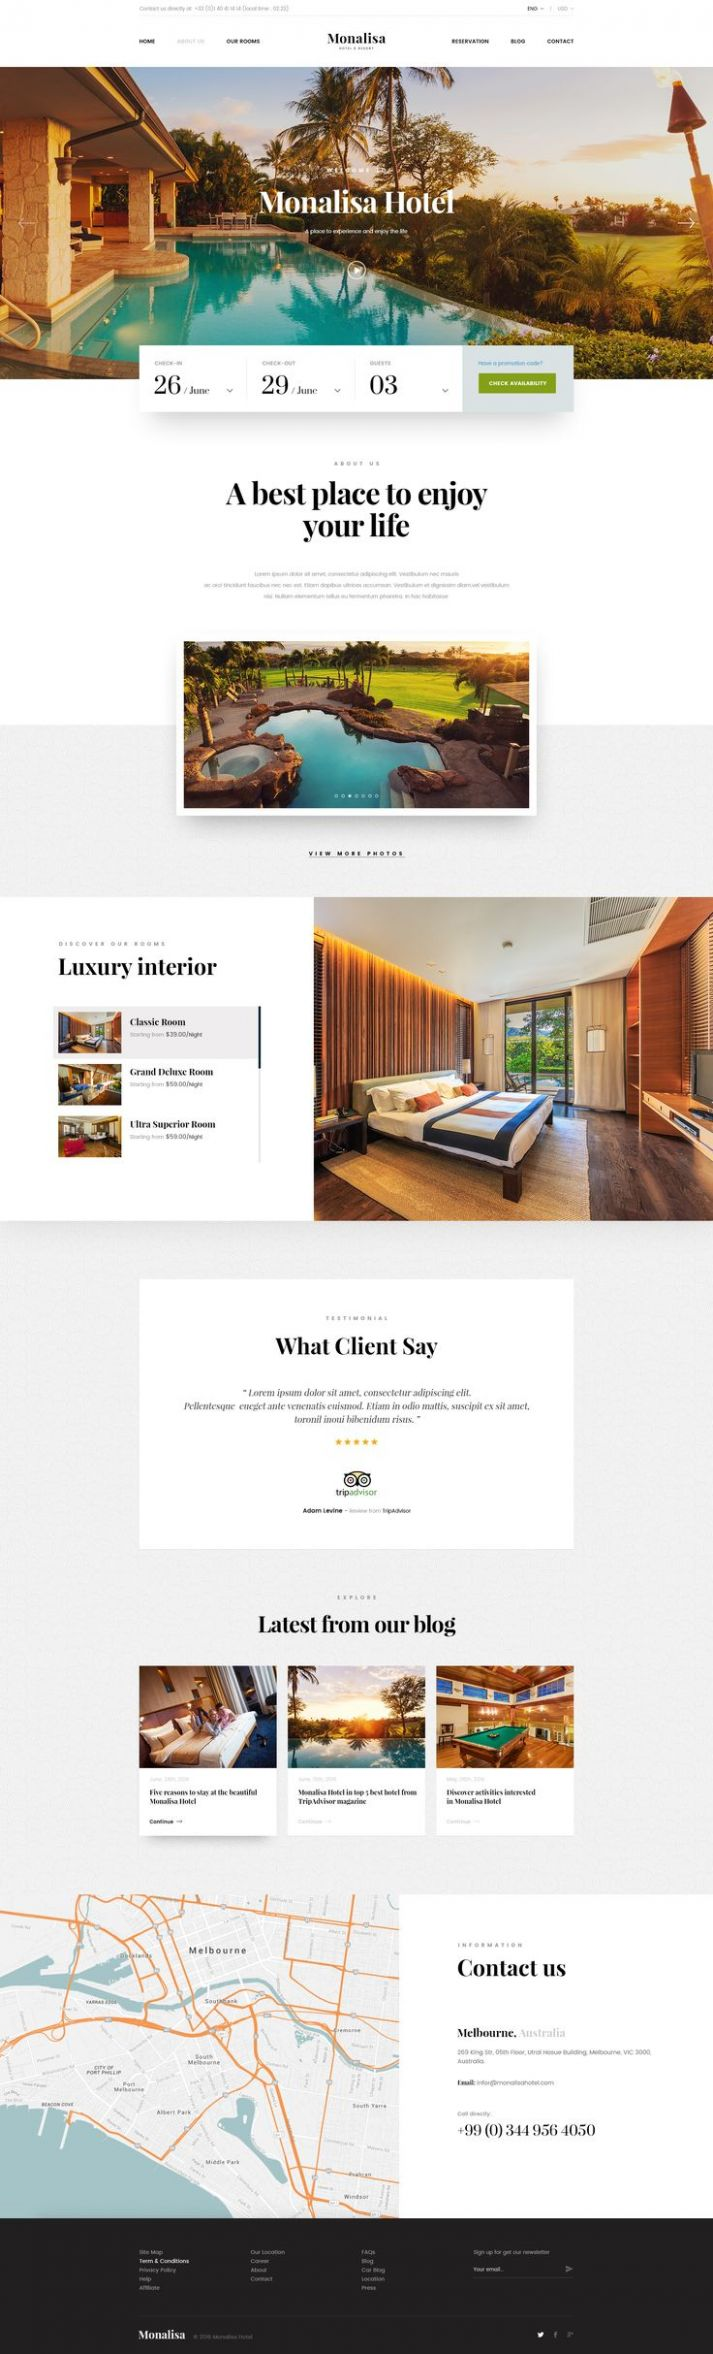 home design inspiration websites] - 9 images - jewelry swiss ...